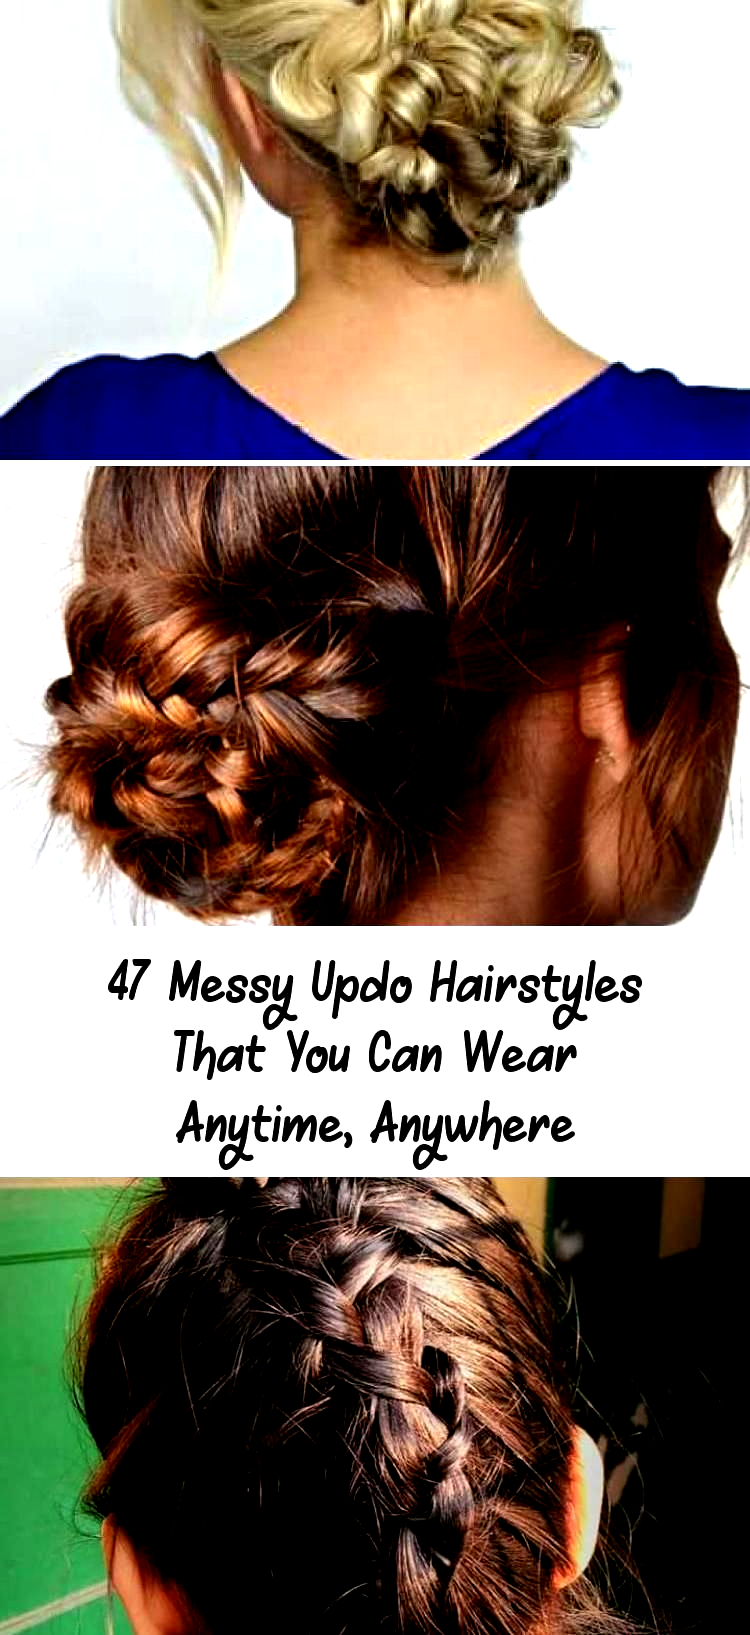 Awesome Messy Updo Hairstyle Tutorial for Thin Hair&; Awesome Messy Updo Hairsty